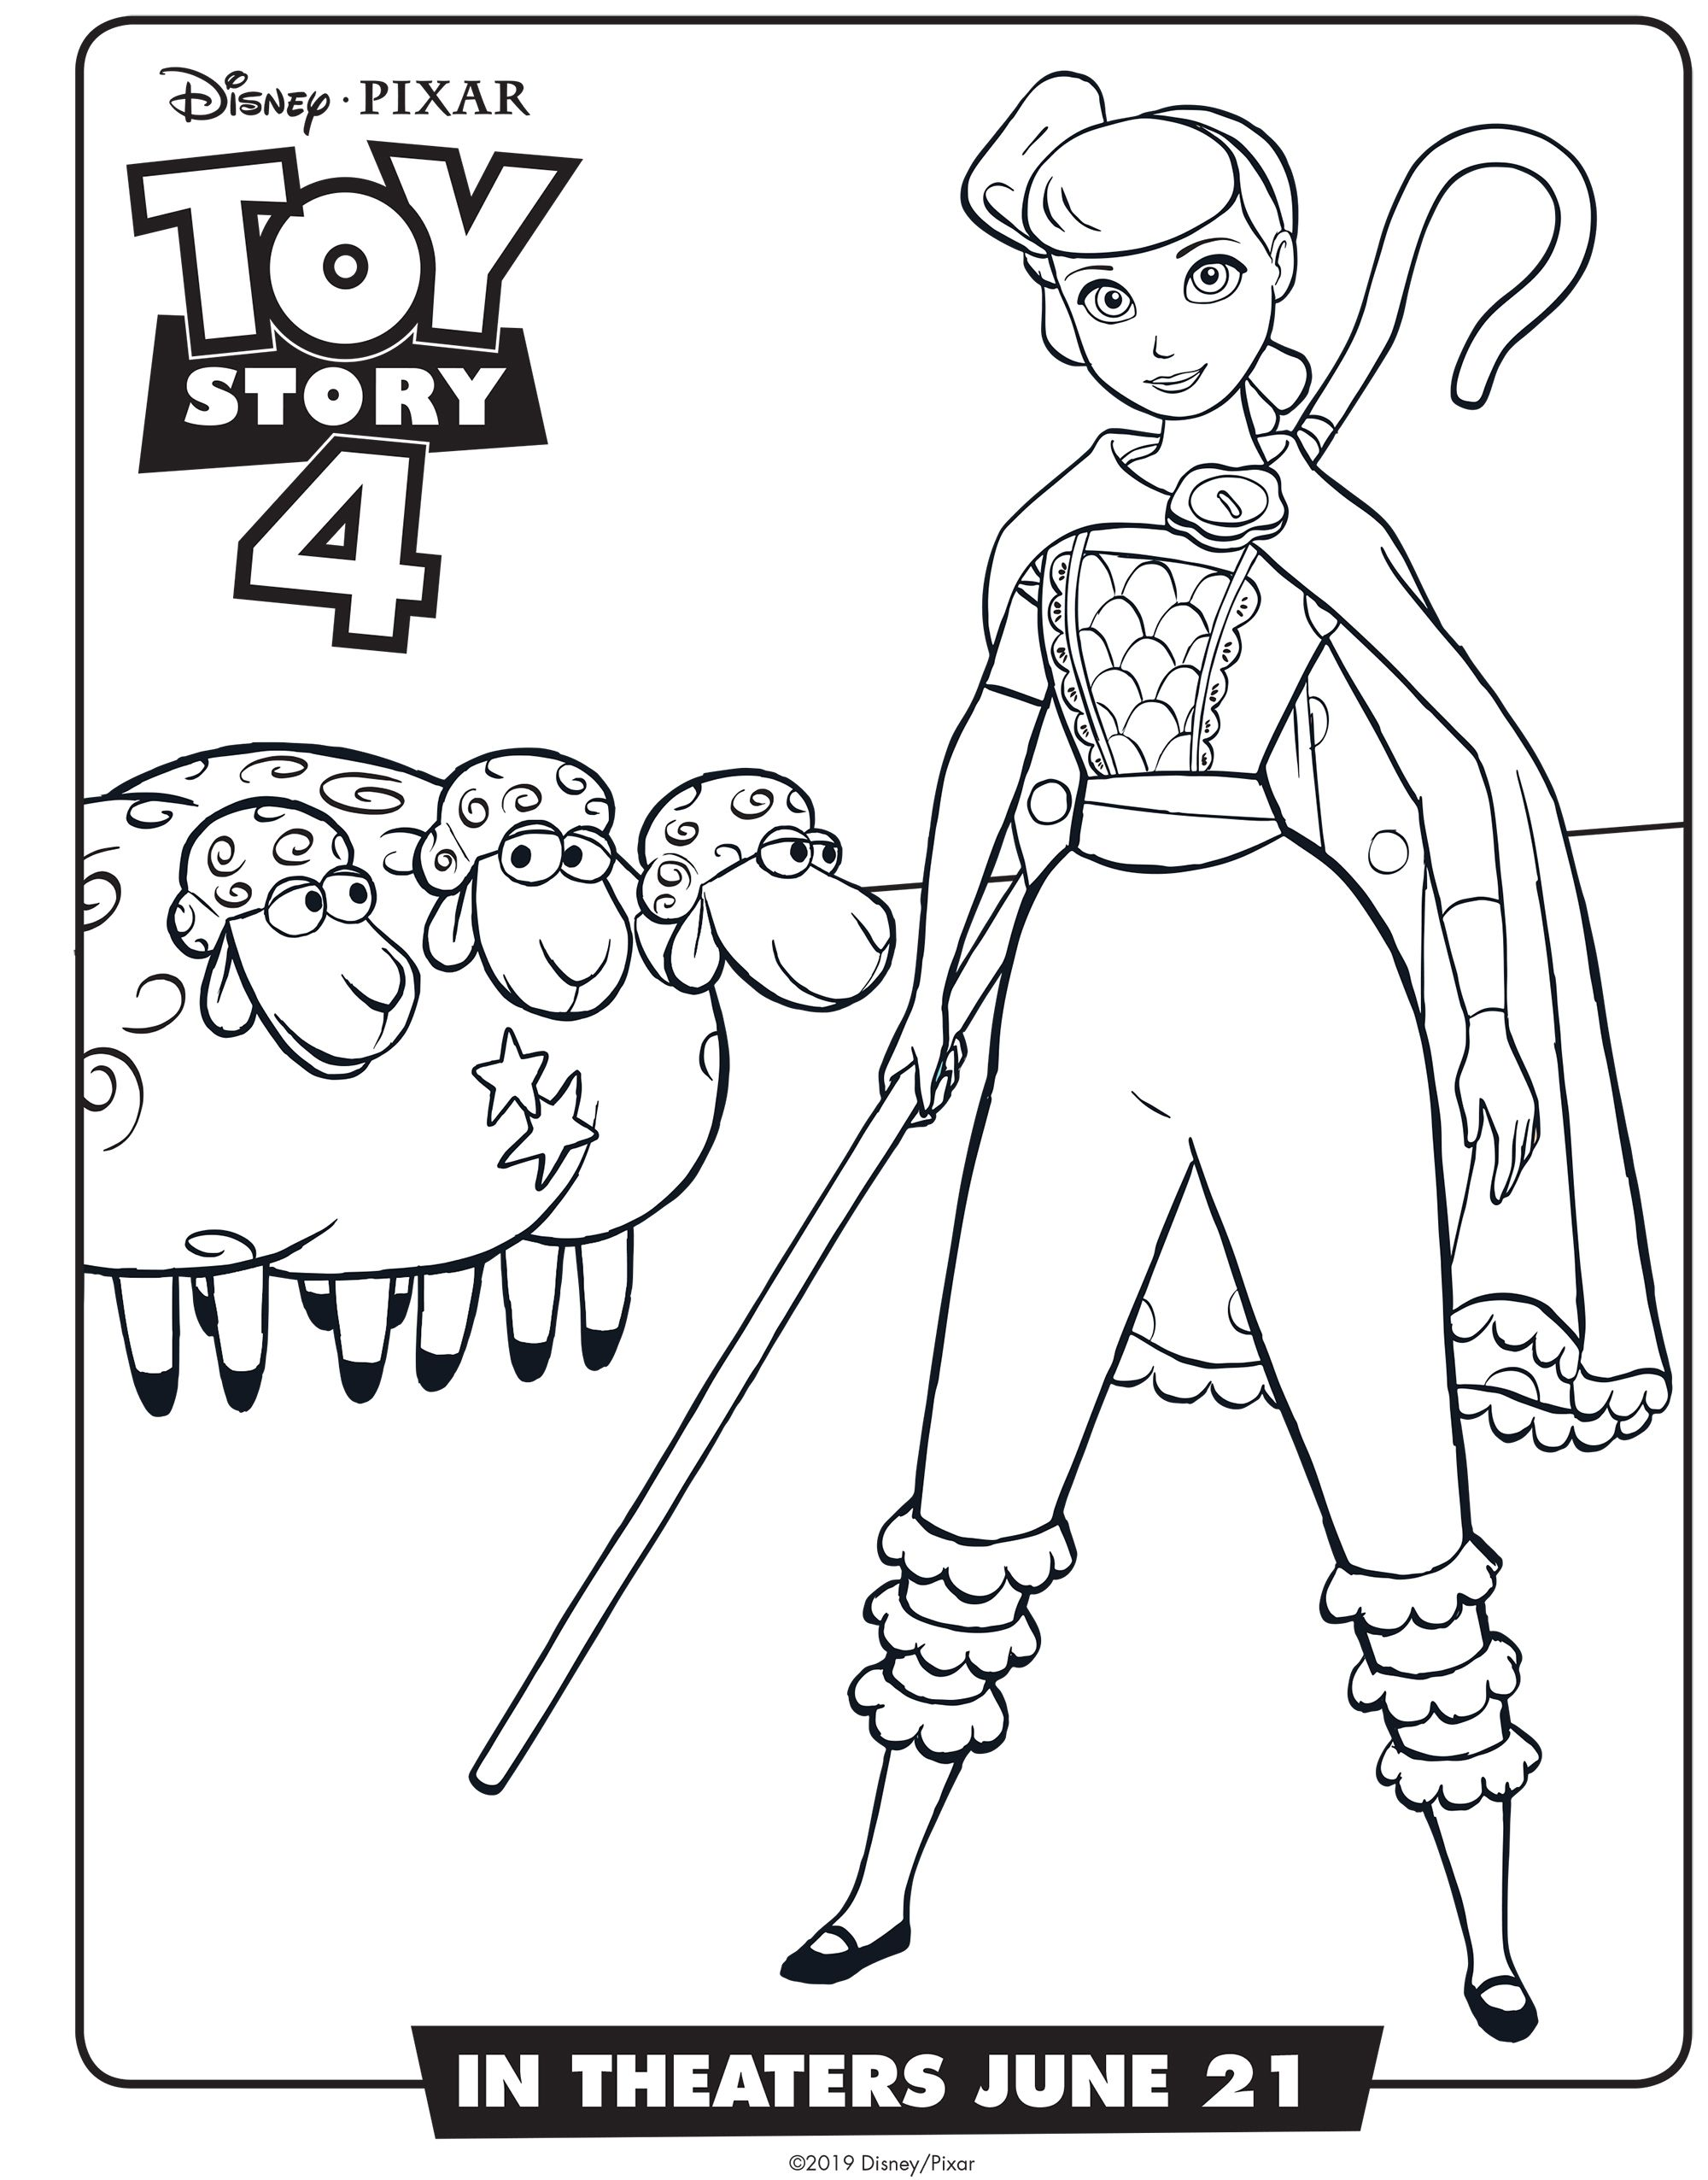 Toy Story 4 Bo Peep Coloring Sheet Disney Toy Story Coloring Pages Disney Coloring Pages Coloring Pages For Kids